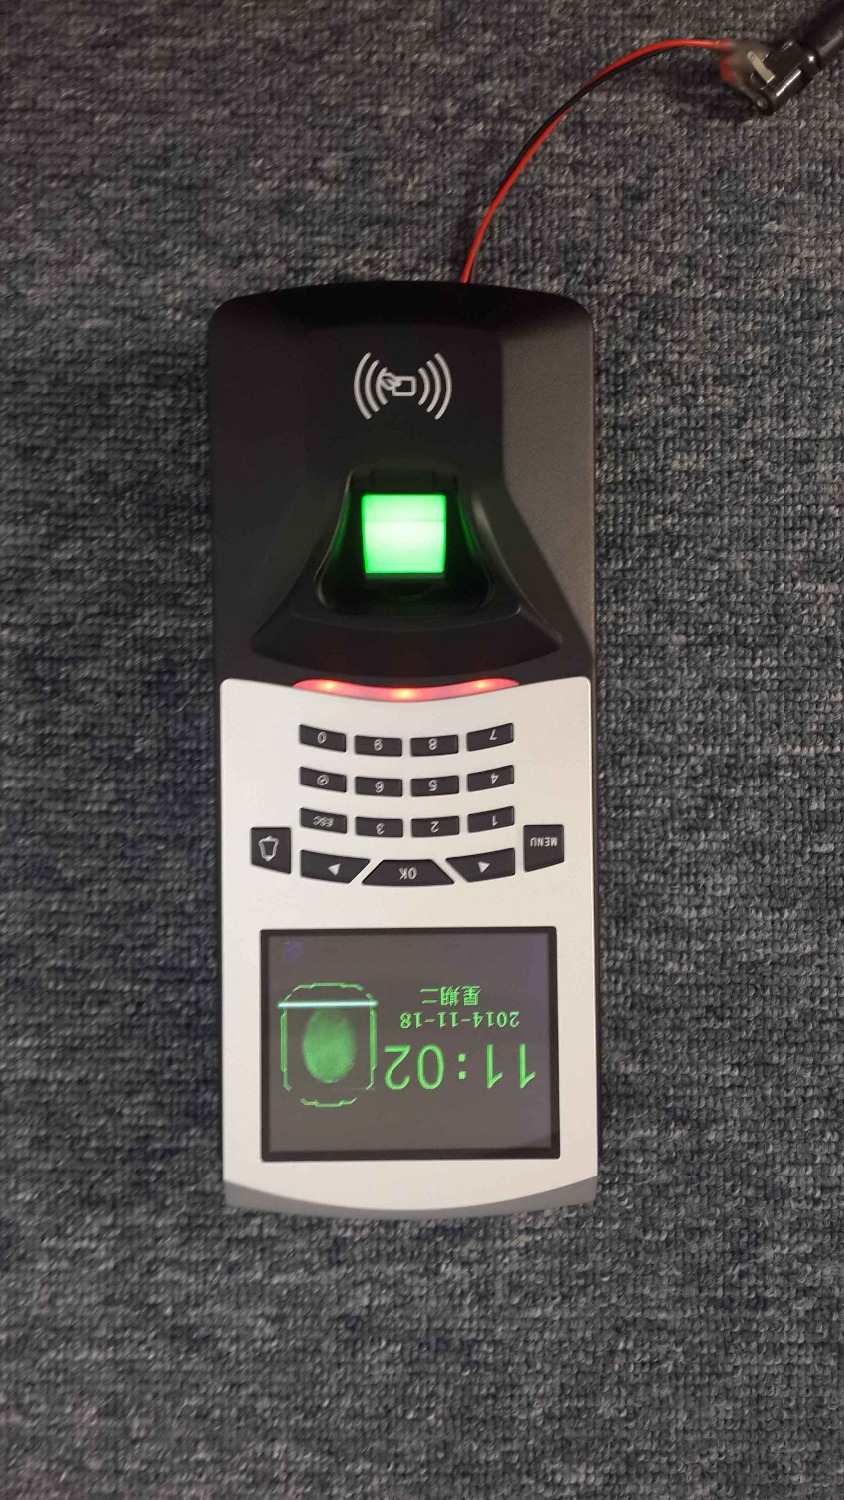 F807 Biometric Fingerprint Access Control Fingerprint Attendance Keypad Access Controller standalone door access control system optional spanish arabic biometric fingerprint door access control tcp ip wiegand f19 fingerprint door security controller